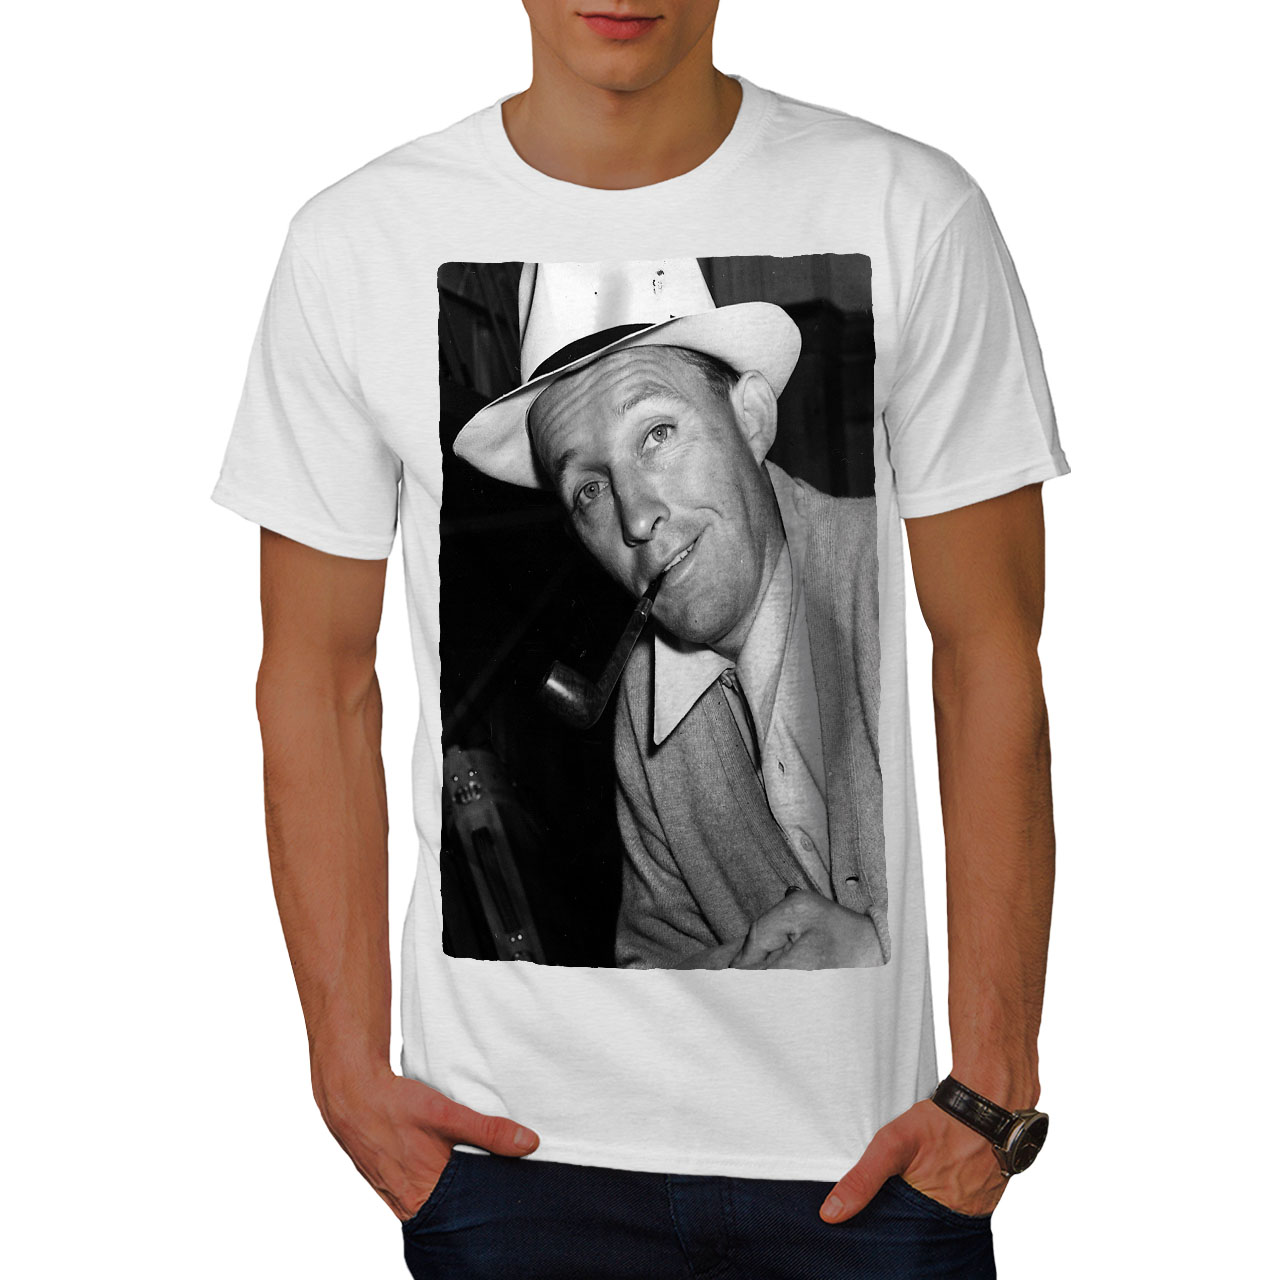 6117cbcc2 Wellcoda Bing Crosby Celebrity Mens T-shirt, Famous Graphic Design ...